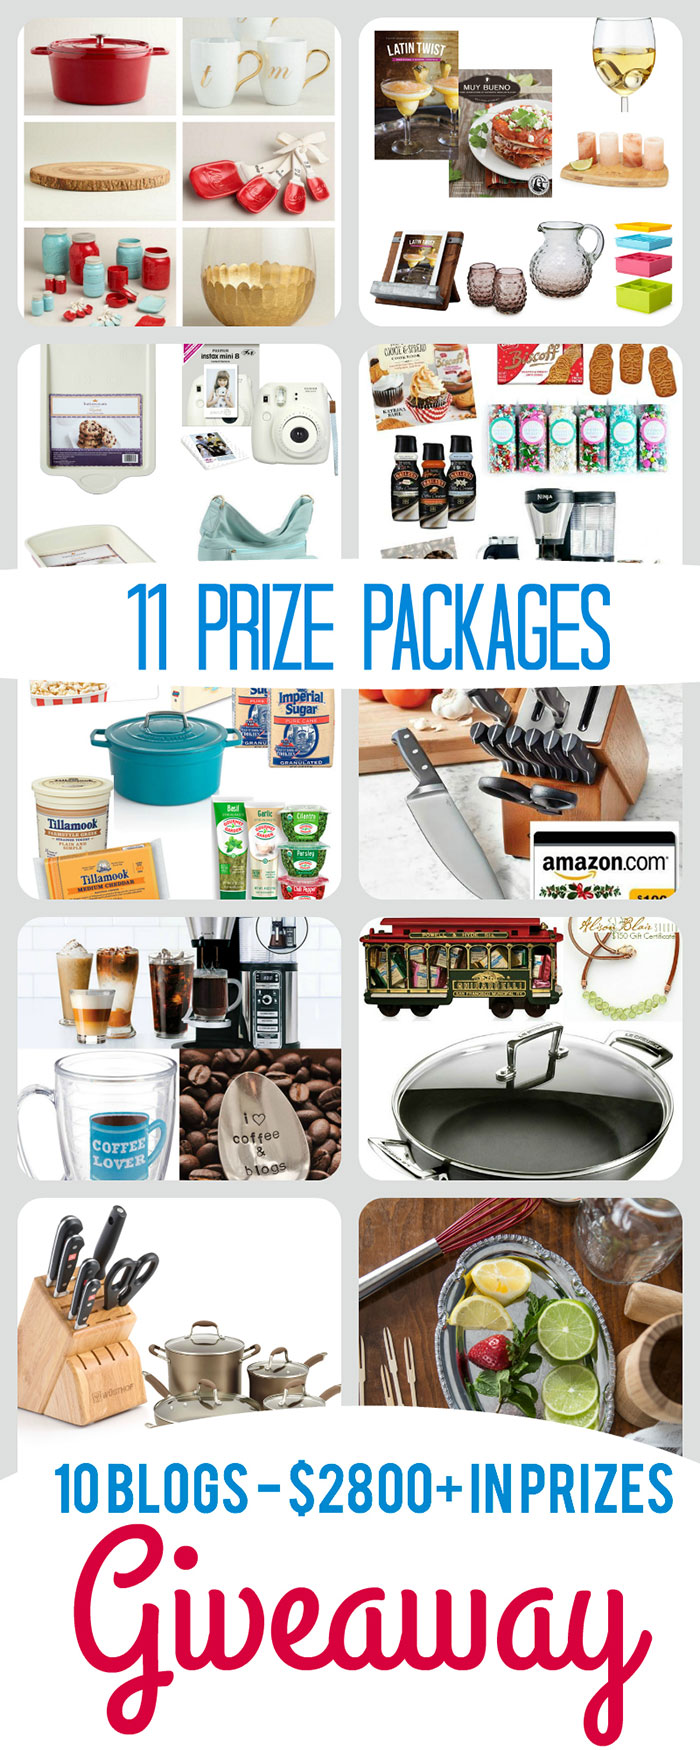 10 amazing bloggers giving away 11 amazing prize packages worth over $2800 combined, come enter and win some of our favorite items